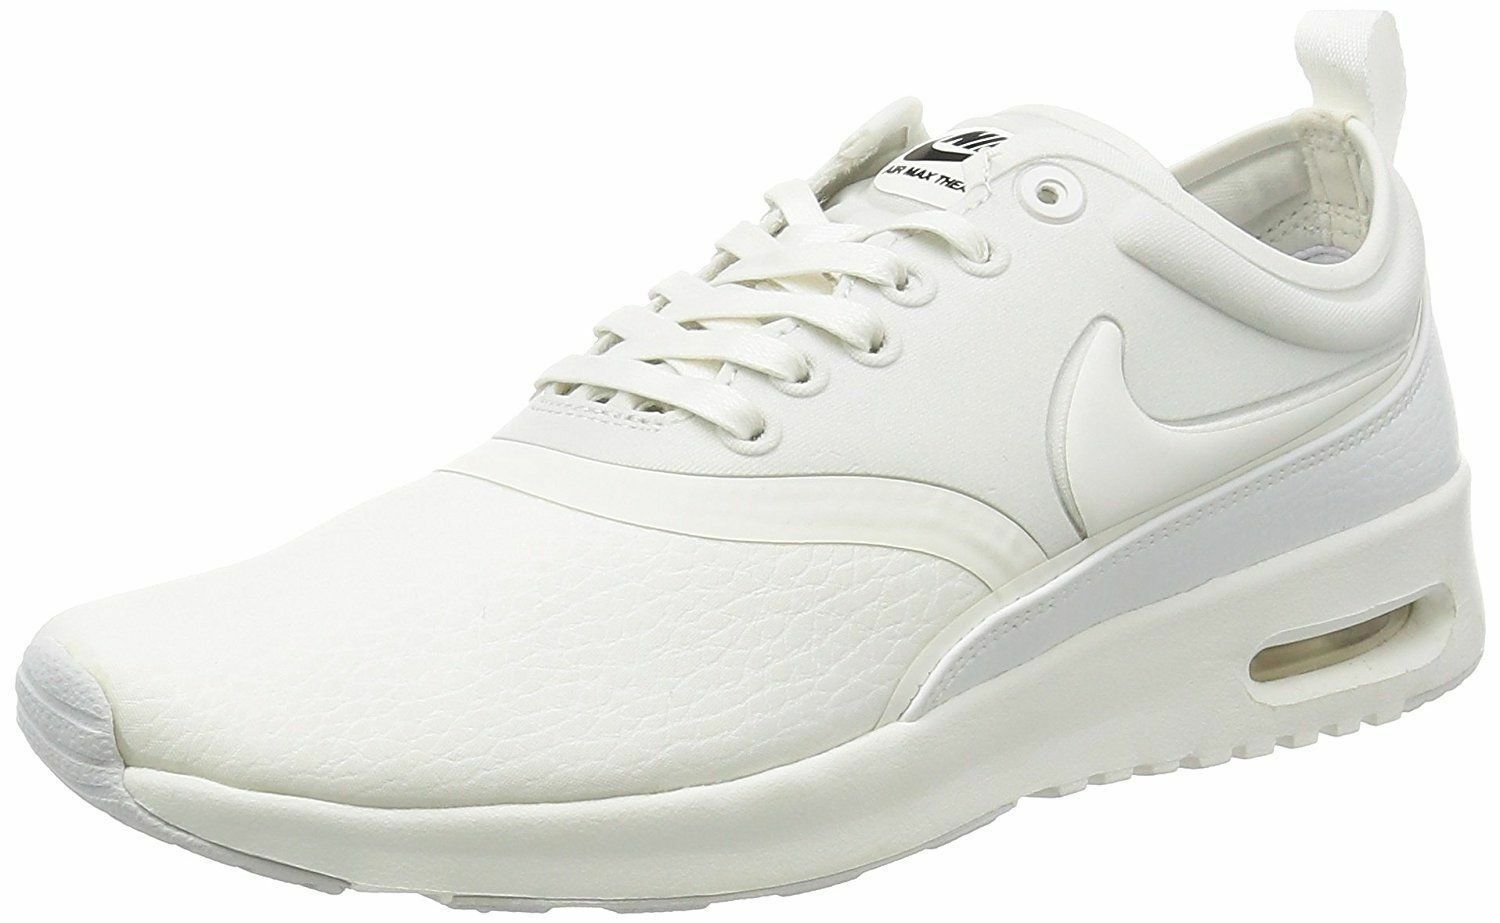 NIKE AIR MAX THEA ULTRA PREMIUM WOMEN RUNNING TRAIN SHOE SUMMIT WHITE 848279 100